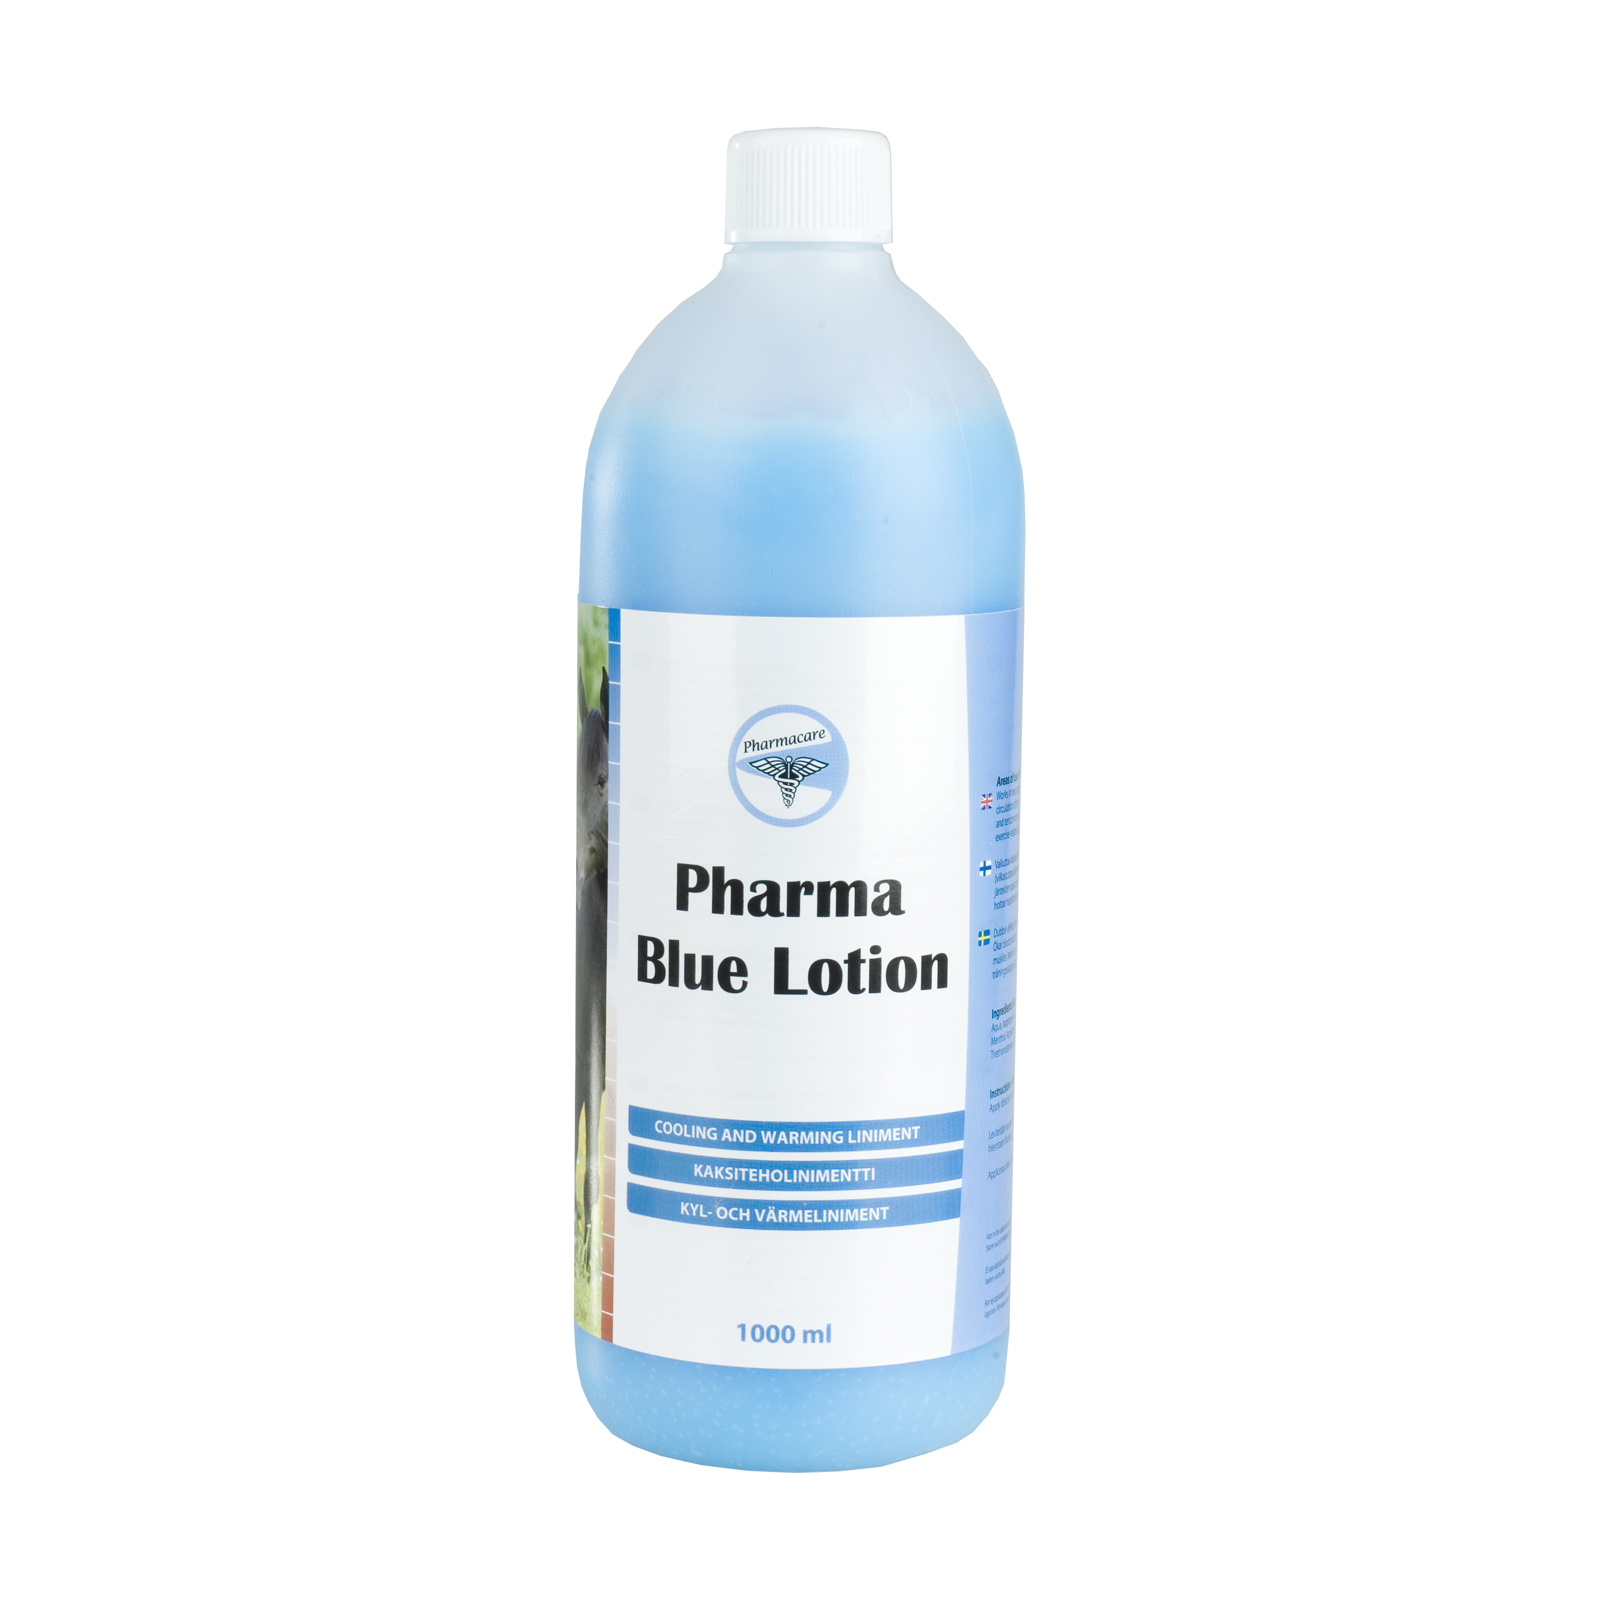 Pharma Blue Lotion 1000 ml